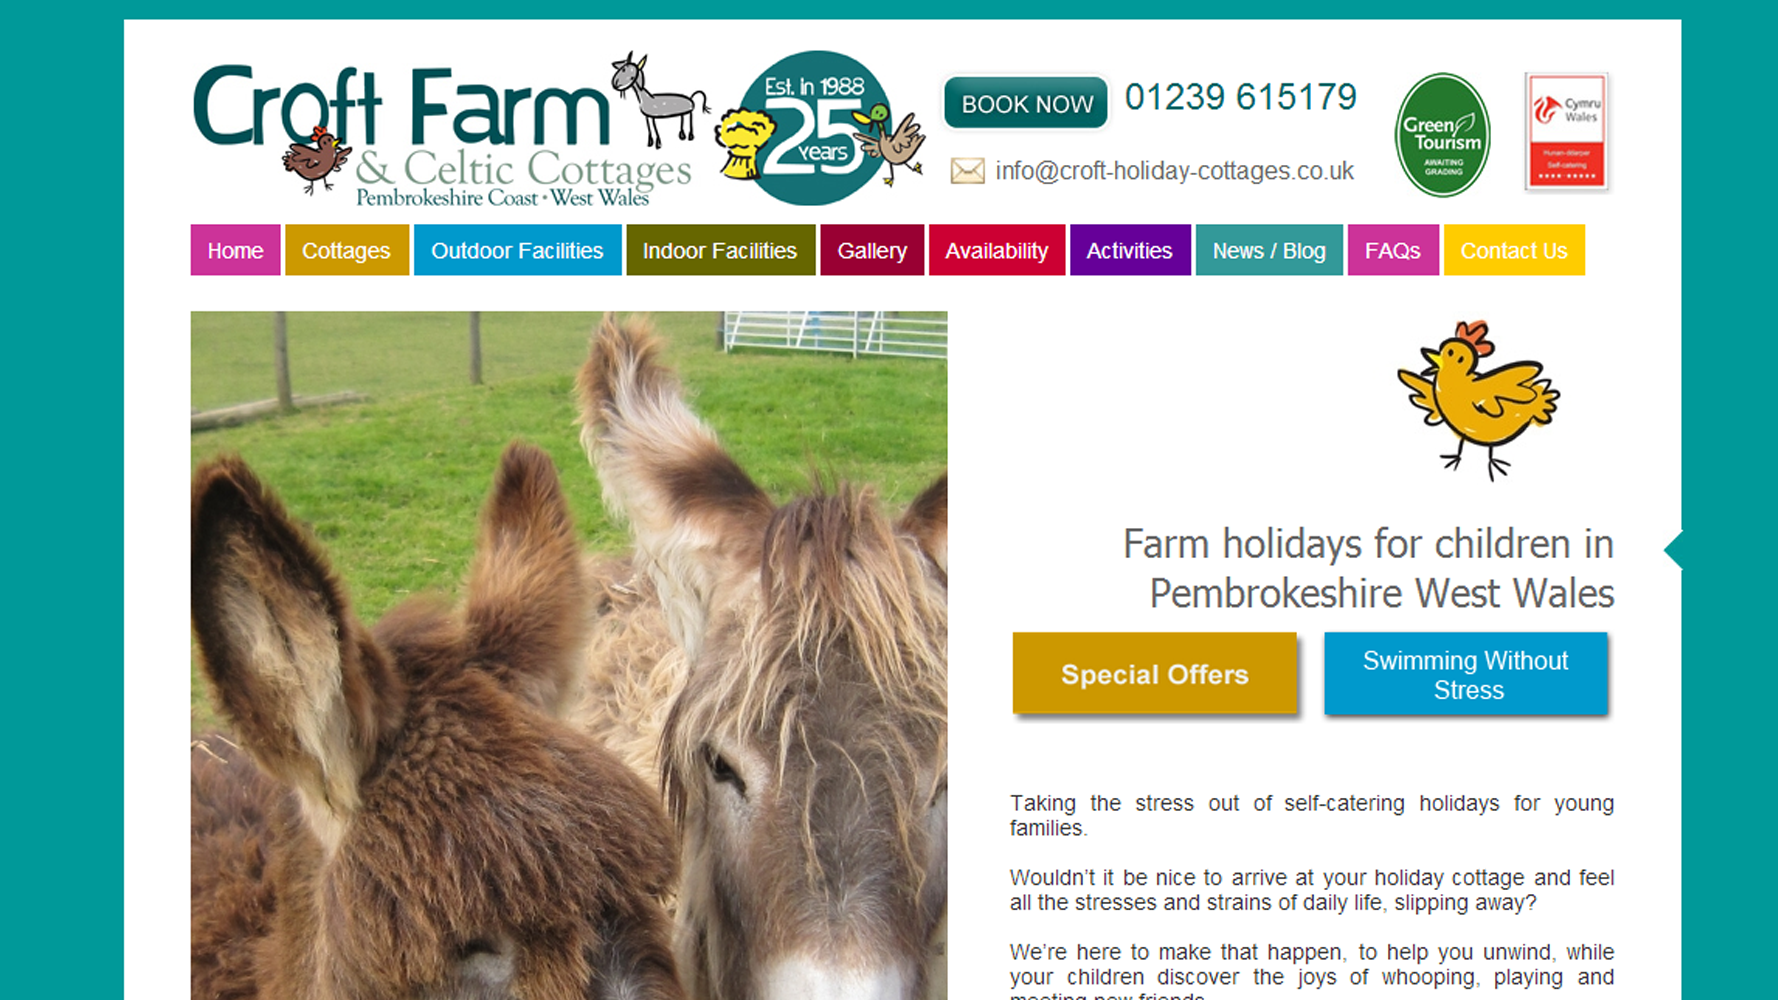 croft farm holiday cottages web development from Web Adept